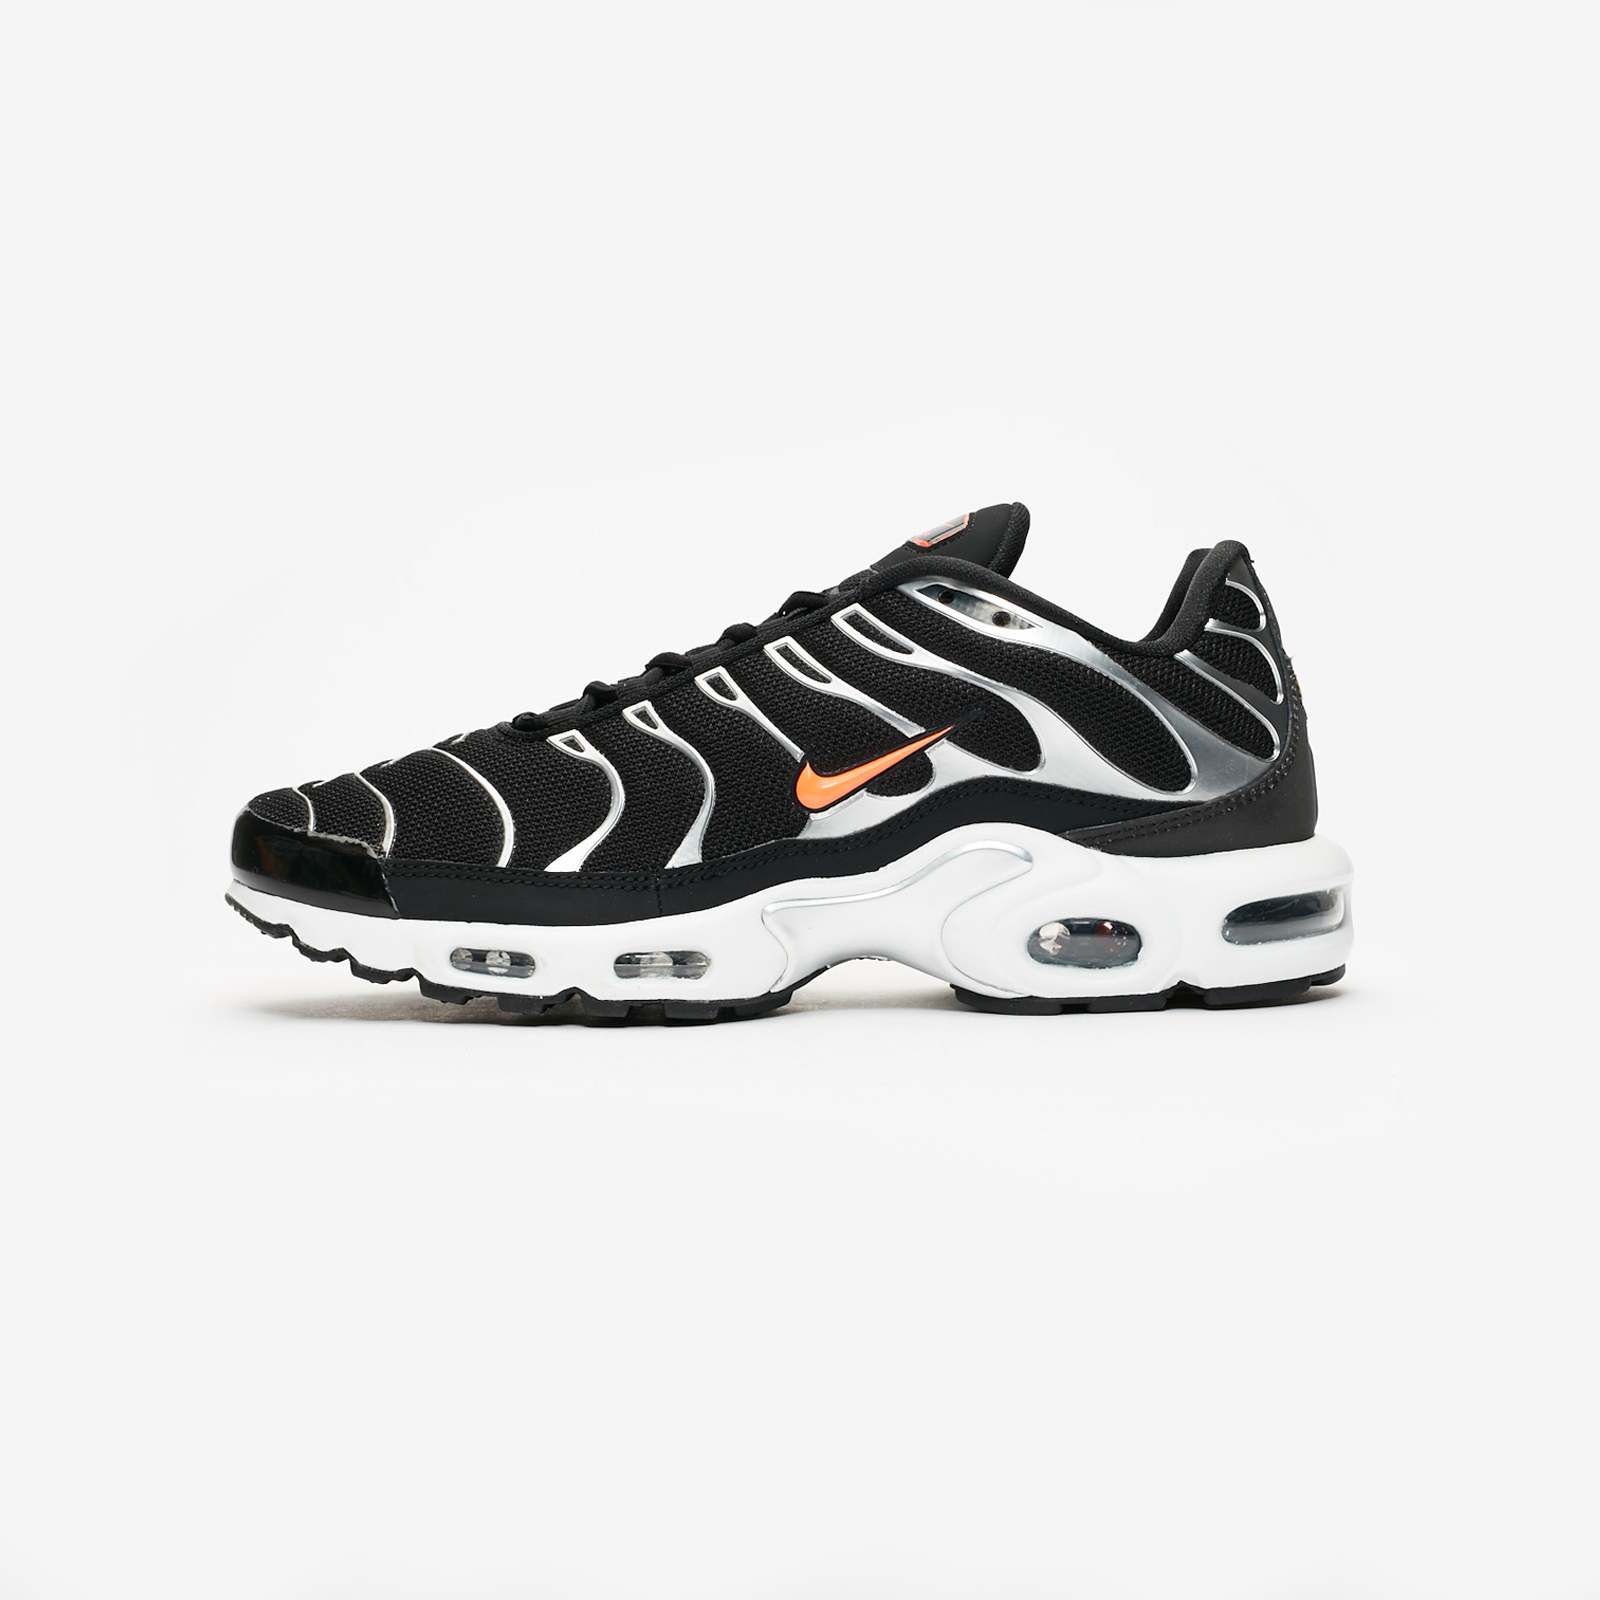 890f288f8b3 Nike Air Max Plus TN SE - Cd1533-001 - Sneakersnstuff